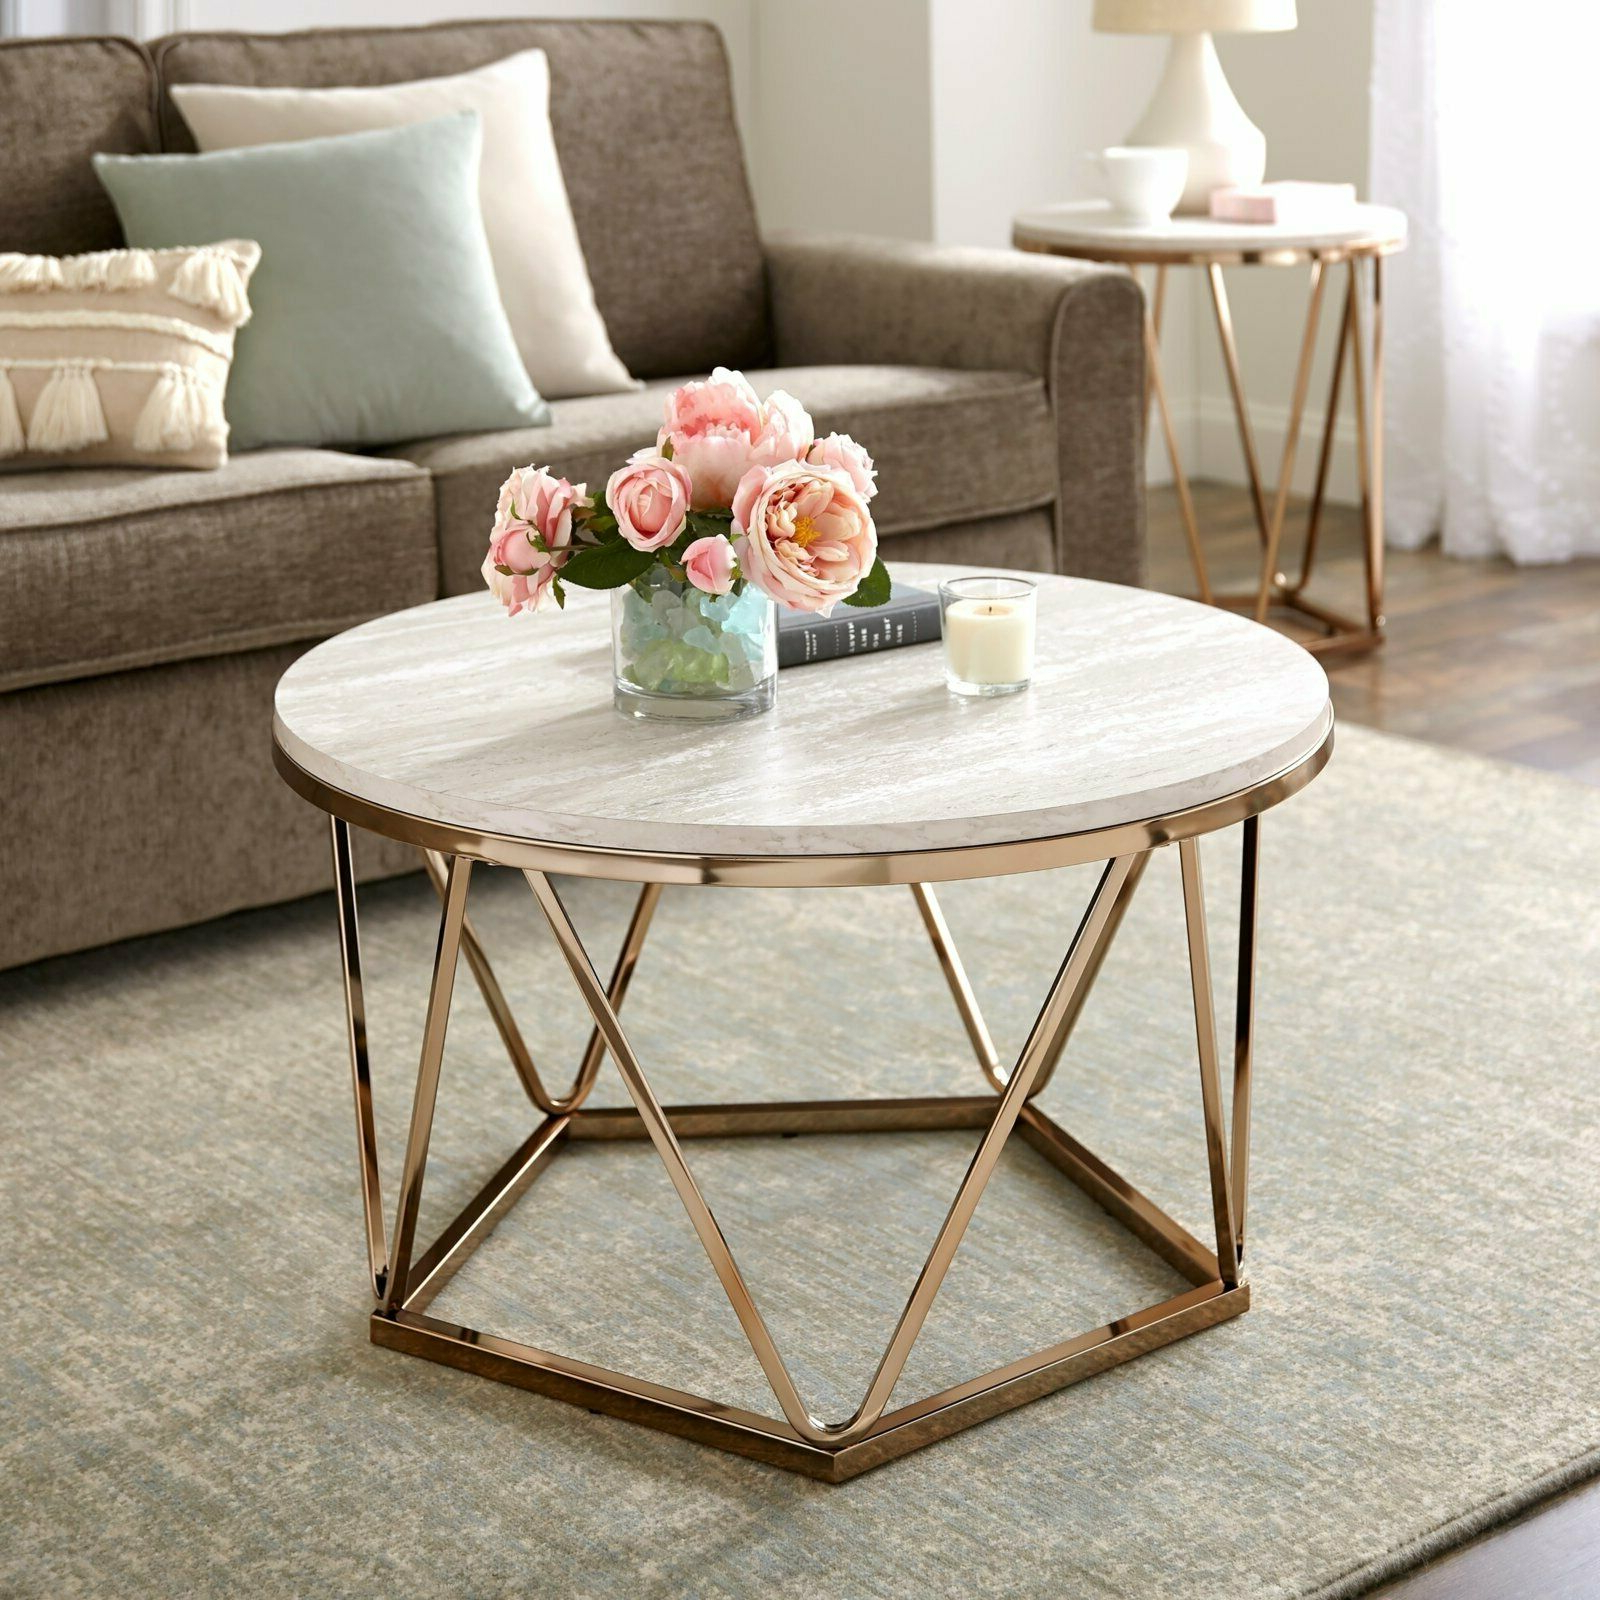 Latest Silver Orchid Ipsen Round Coffee Tables With X Base With Details About Silver Orchid Henderson Faux Stone Goldtone Round Coffee Table (View 17 of 20)